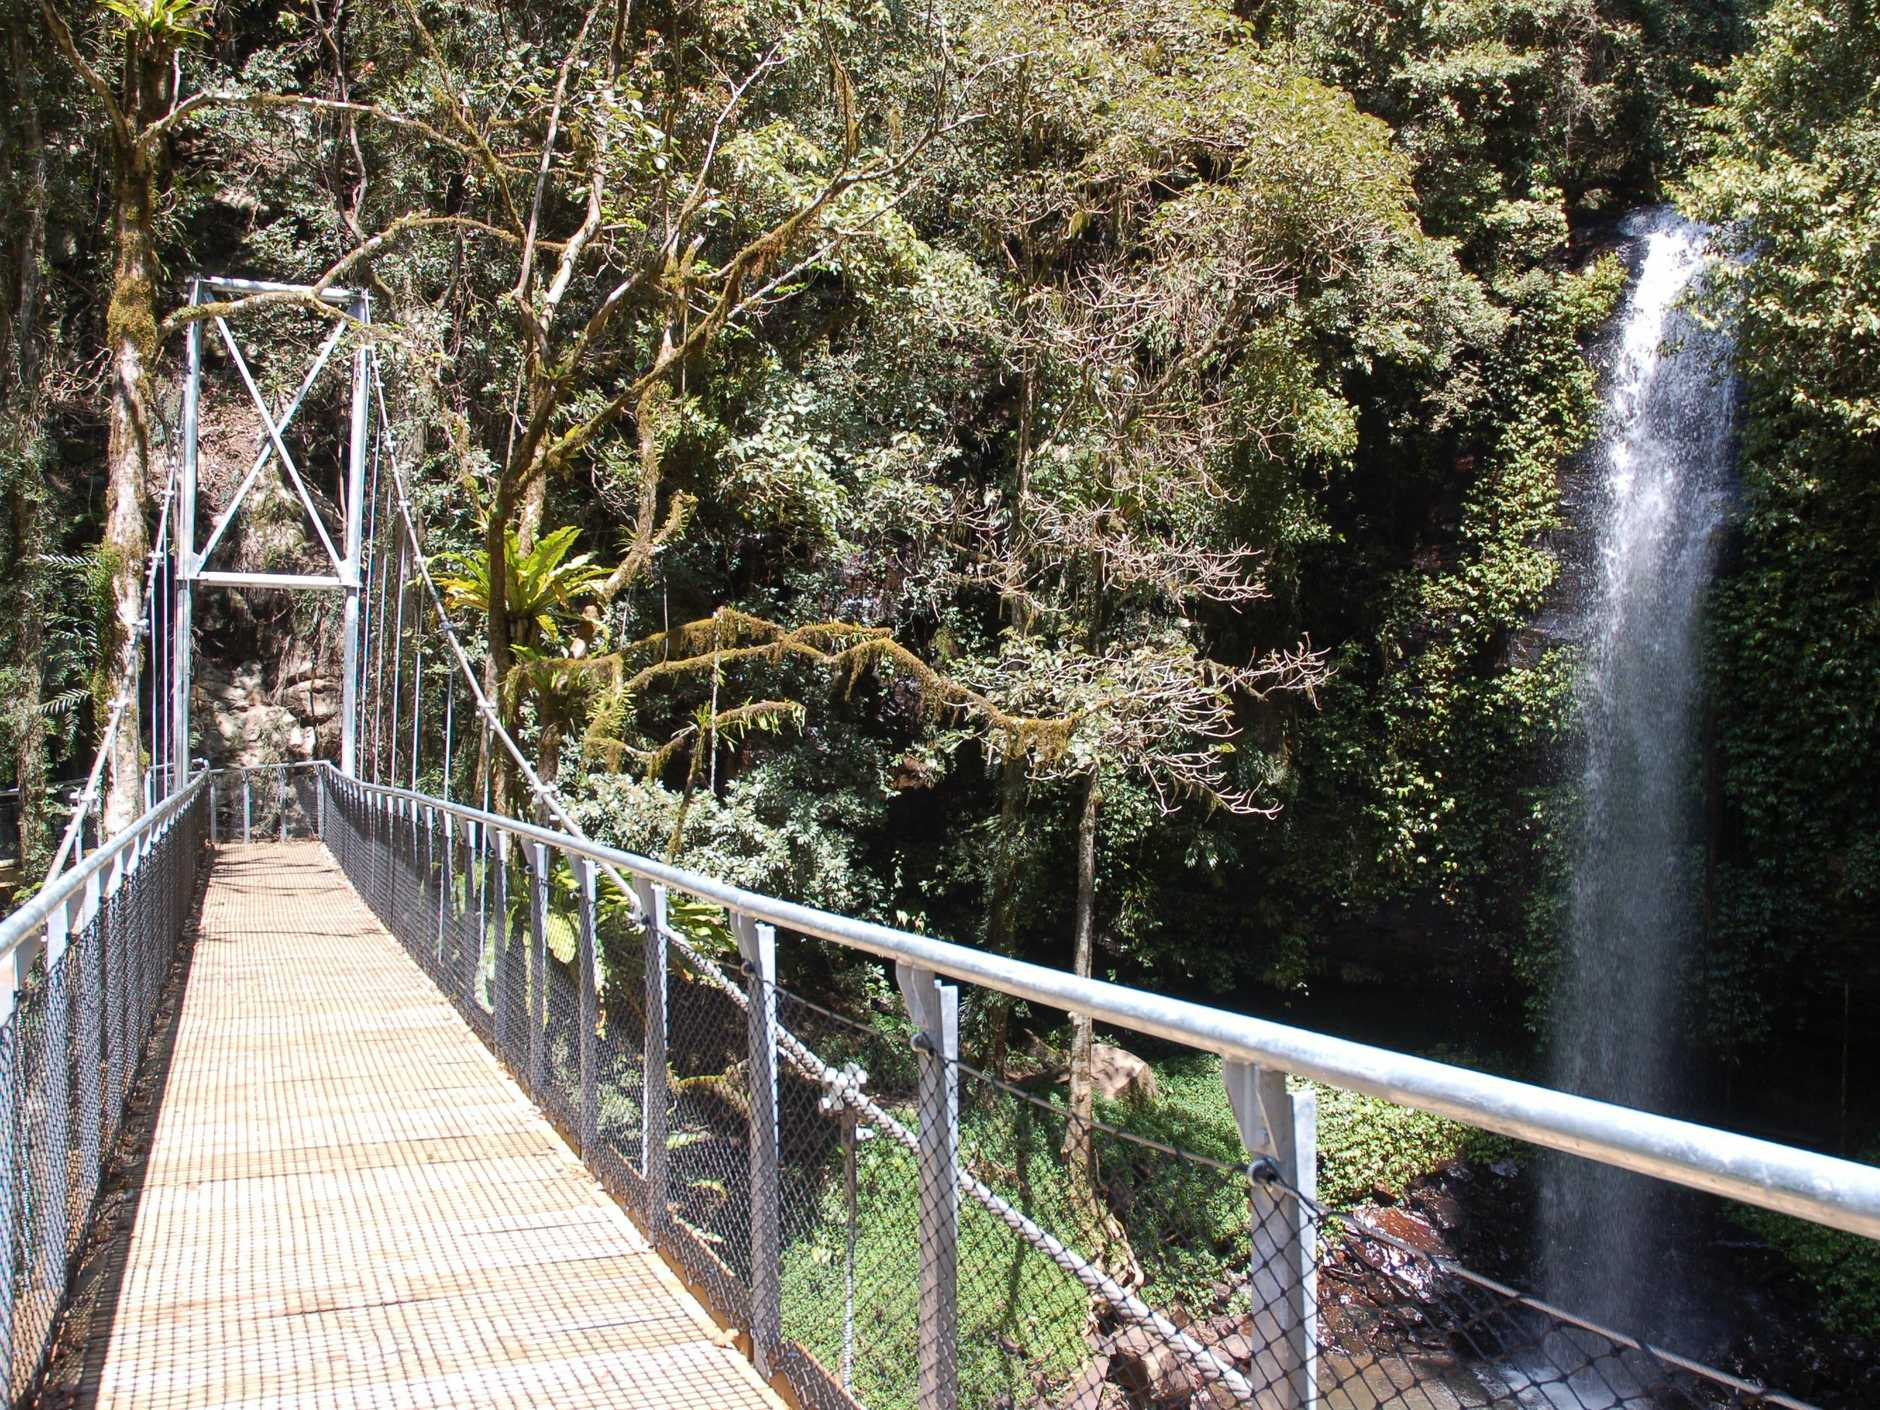 Eco tourism on the Coffs Coast has received a boost with success for Dorrigo State Forest at the NSW Tourism Awards.